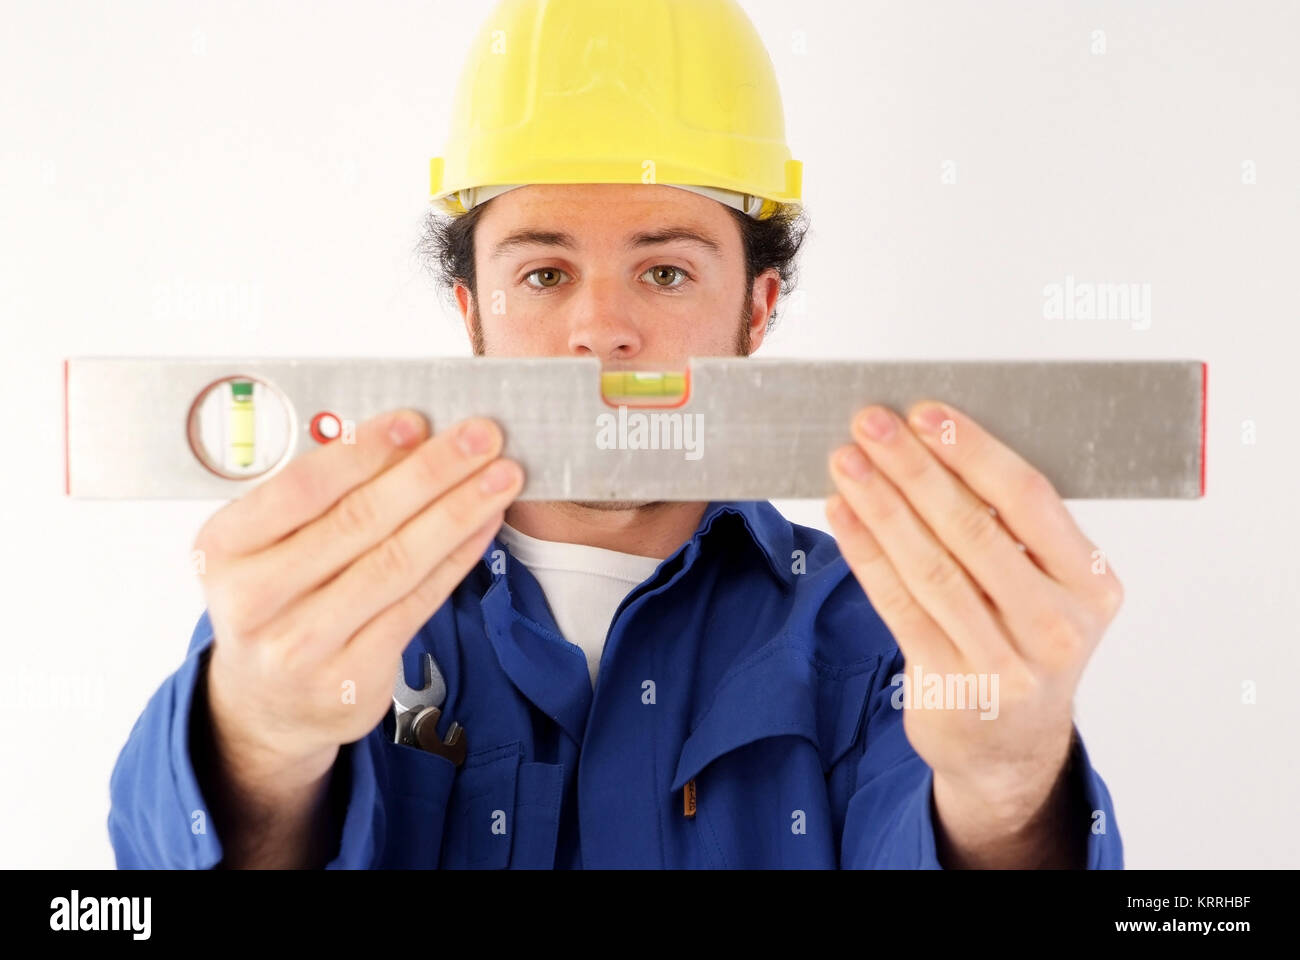 Bauarbeiter mit Wasserwaage - building worker with water scale - Stock Image